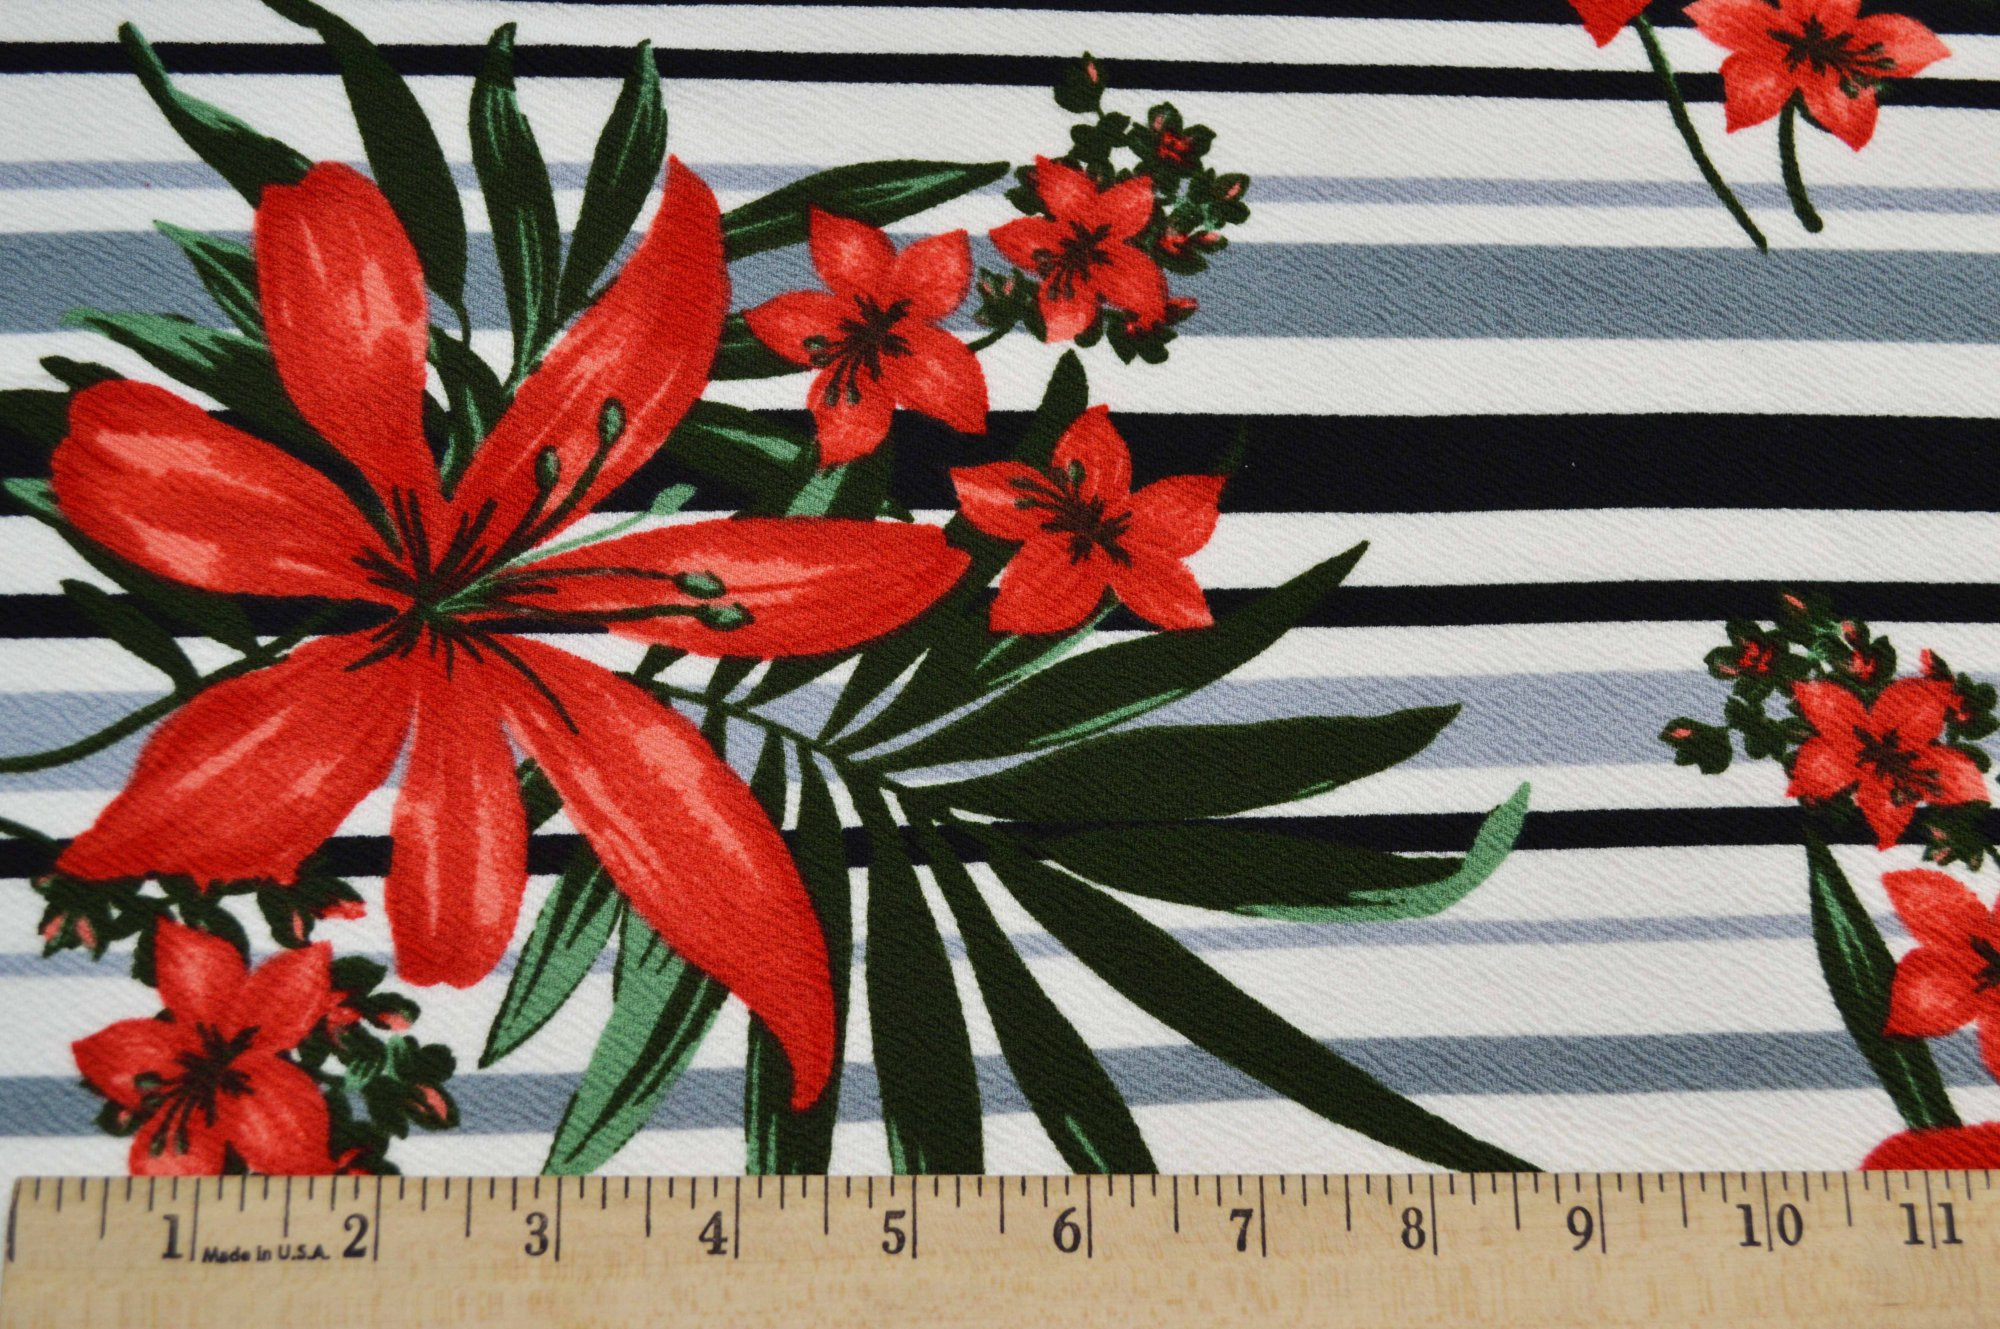 Liverpool Knit - Red Floral on Stripes